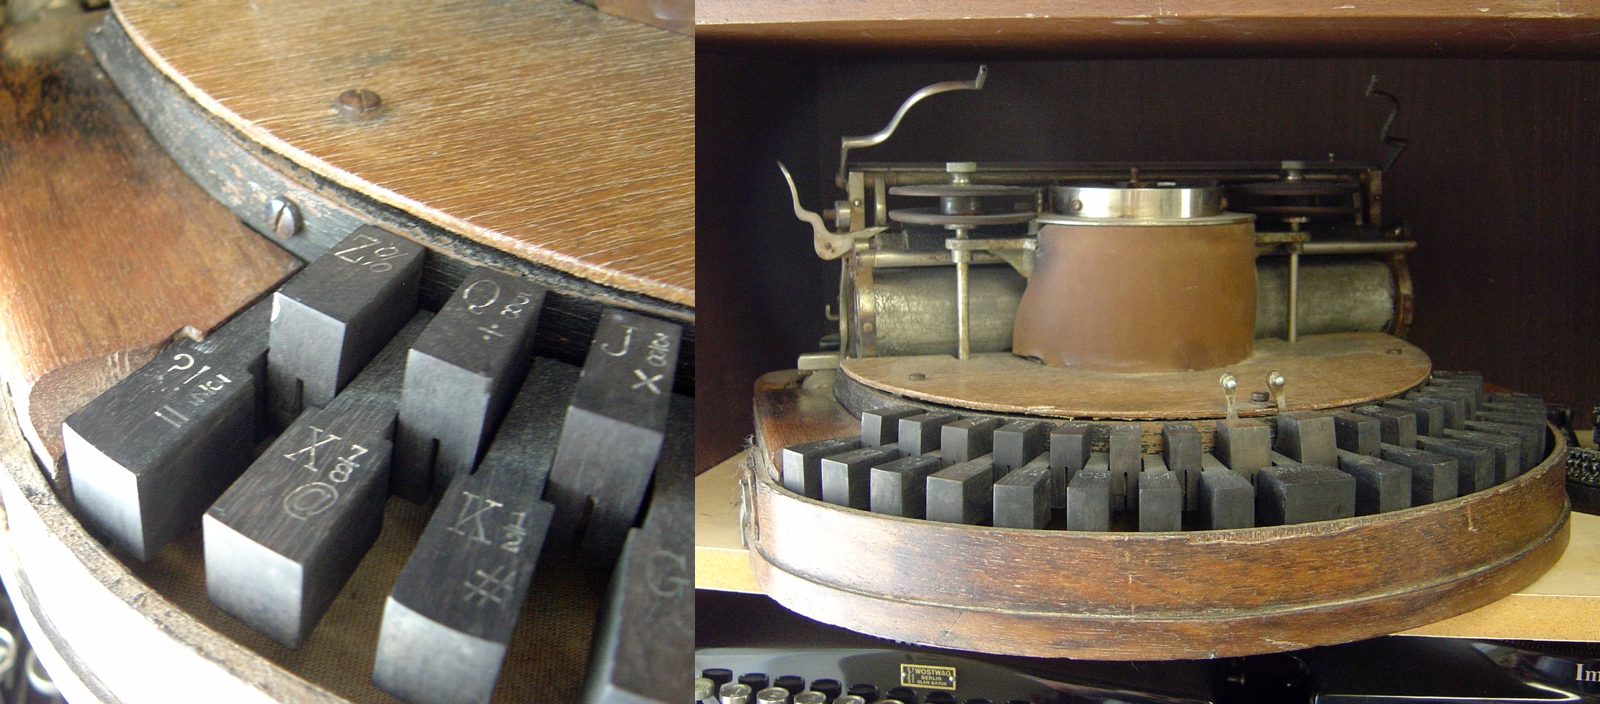 The '@' symbol on the keyboard of an 1889 Hammond typewriter